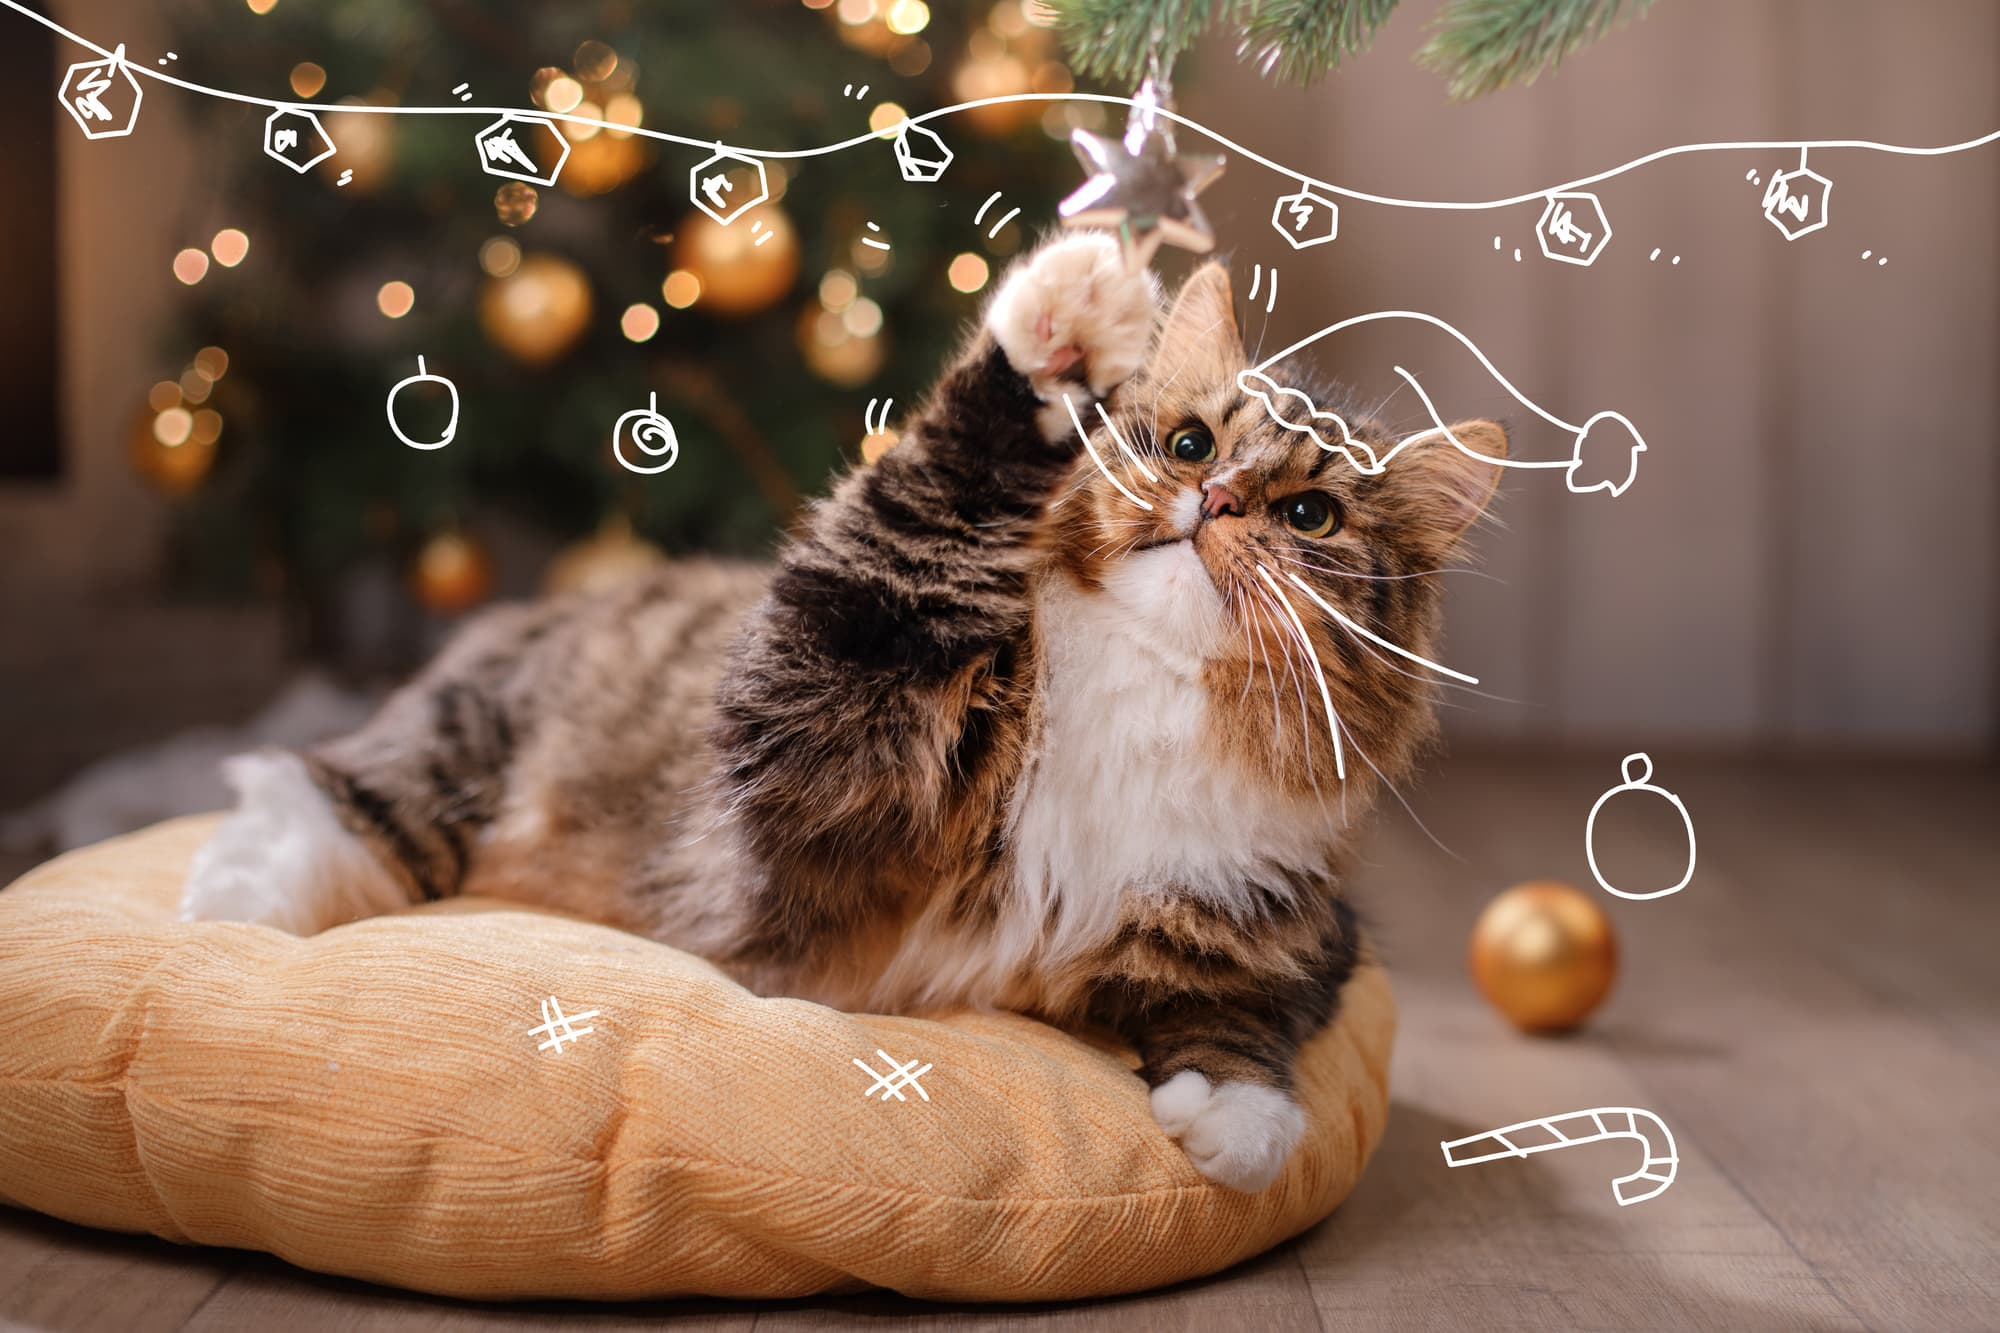 A cat plays with Christmas tree decorations. Cat vs Christmas Tree.